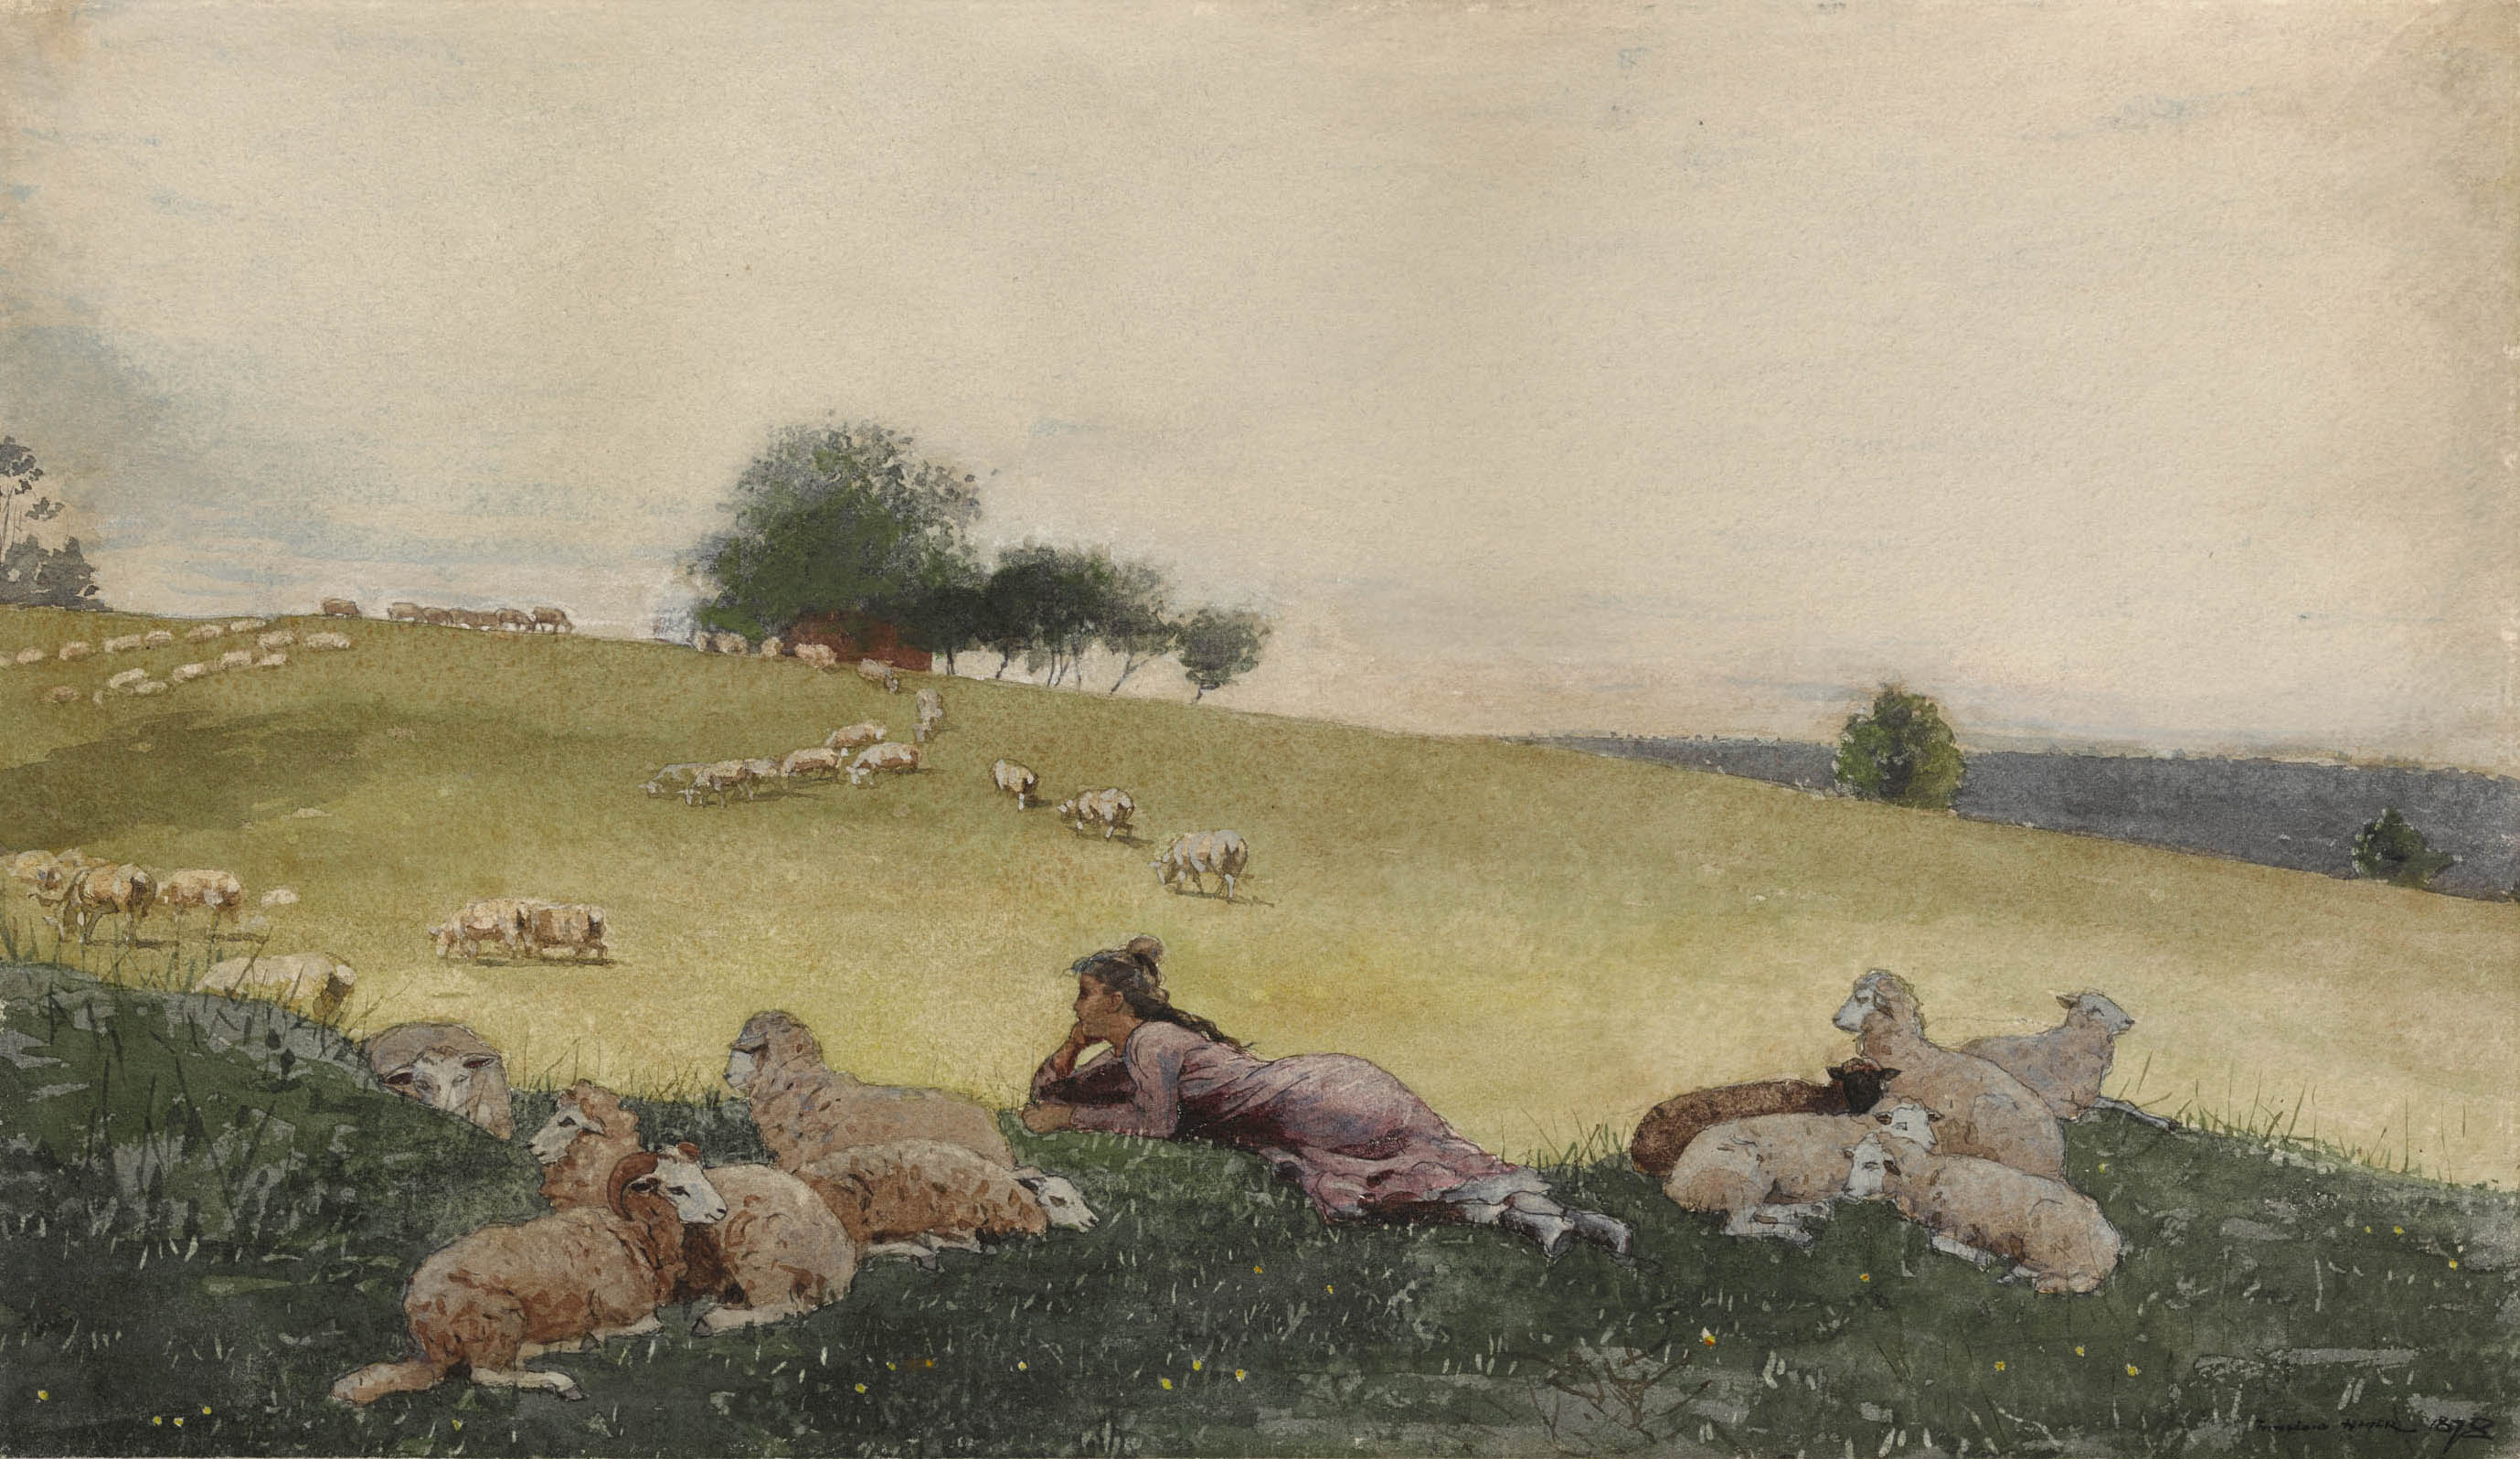 winslow homer life and works essay Essay database with free papers elizabeth johns uniquely examines winslow's life and work from the perspective the life and work of winslow homer, new.